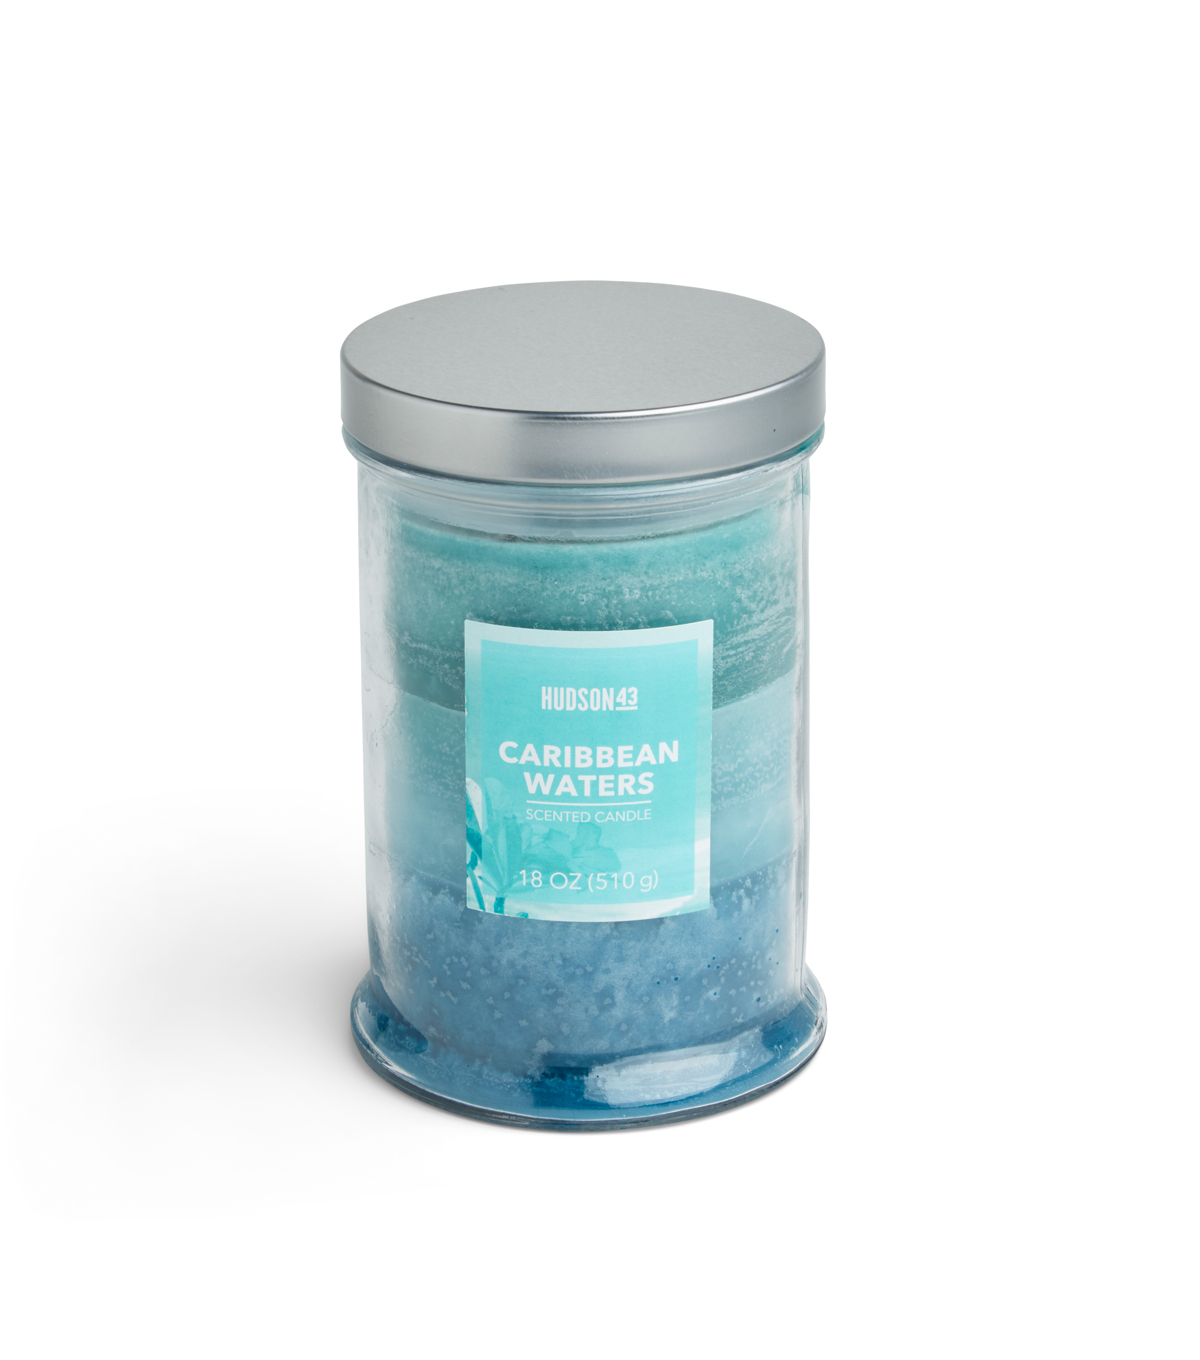 Hudson 43 Candle & Light 18 oz. Caribbean Waters Jar Candle